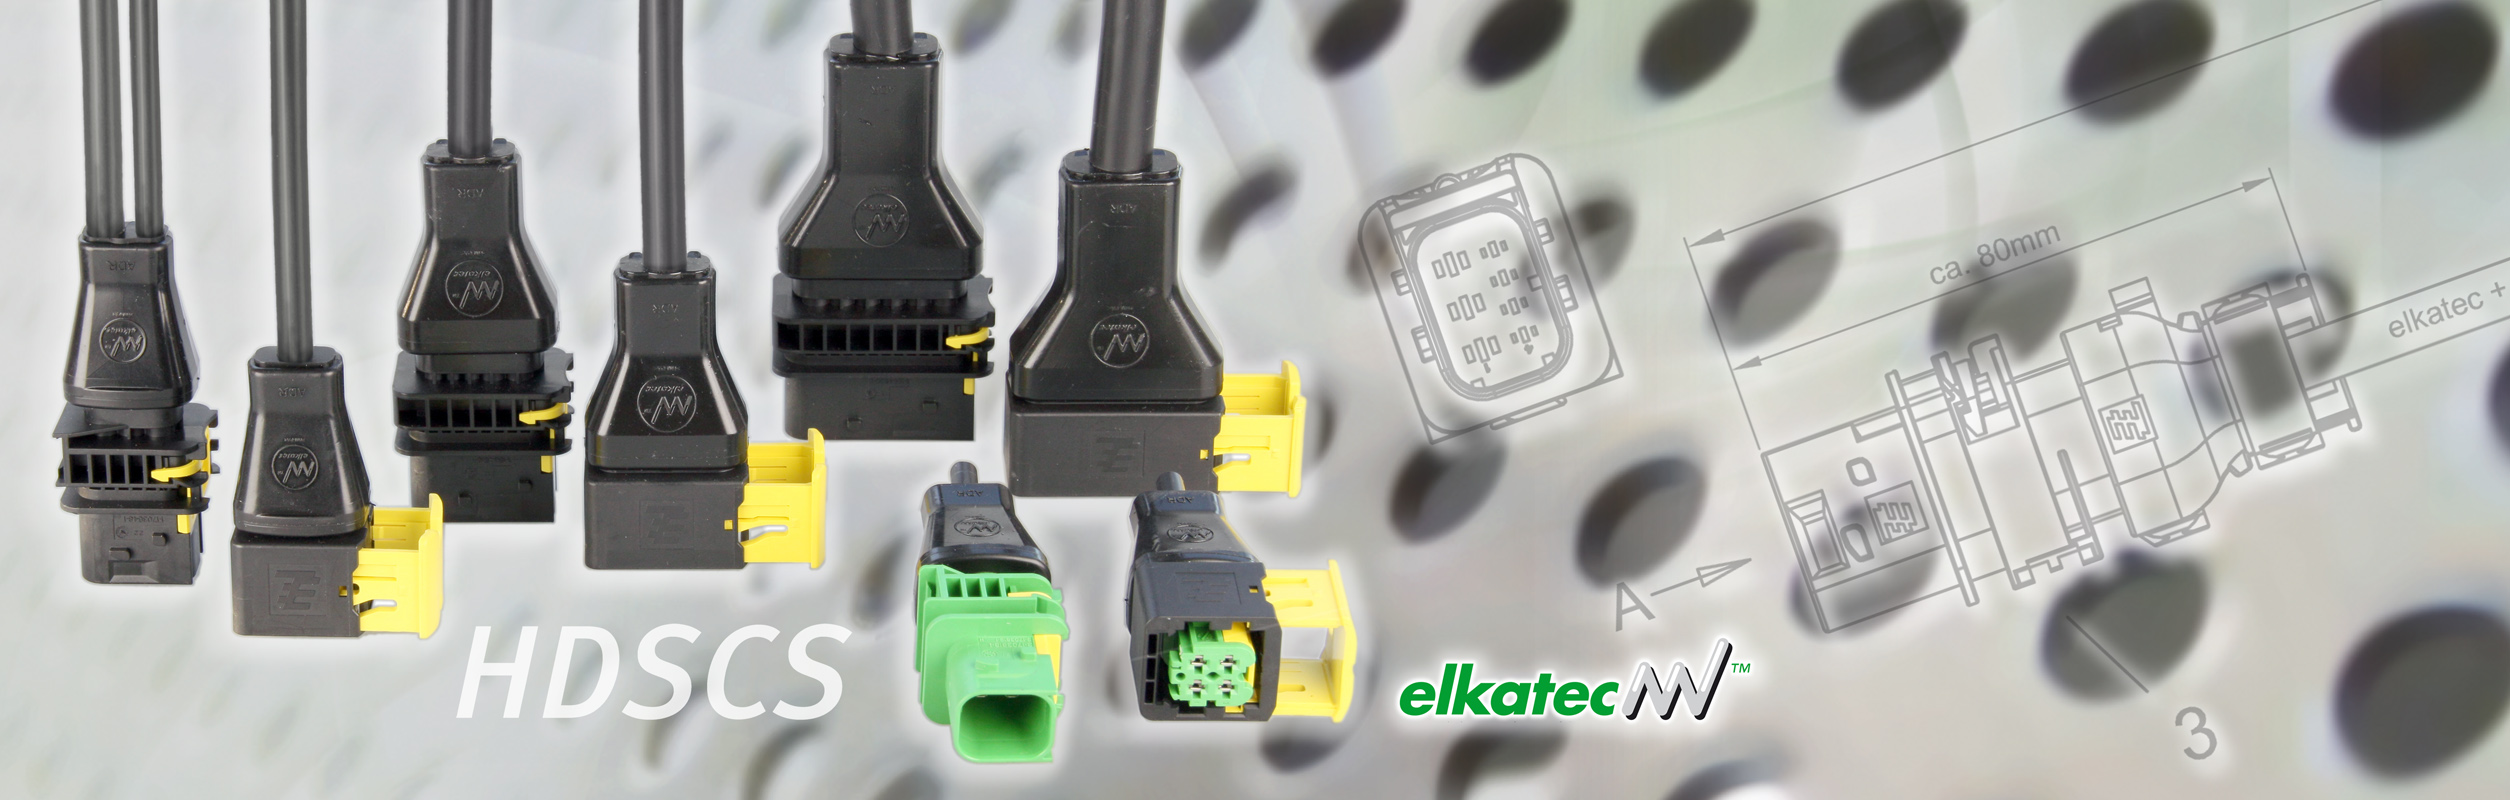 elkatec HDSCS sealed connector